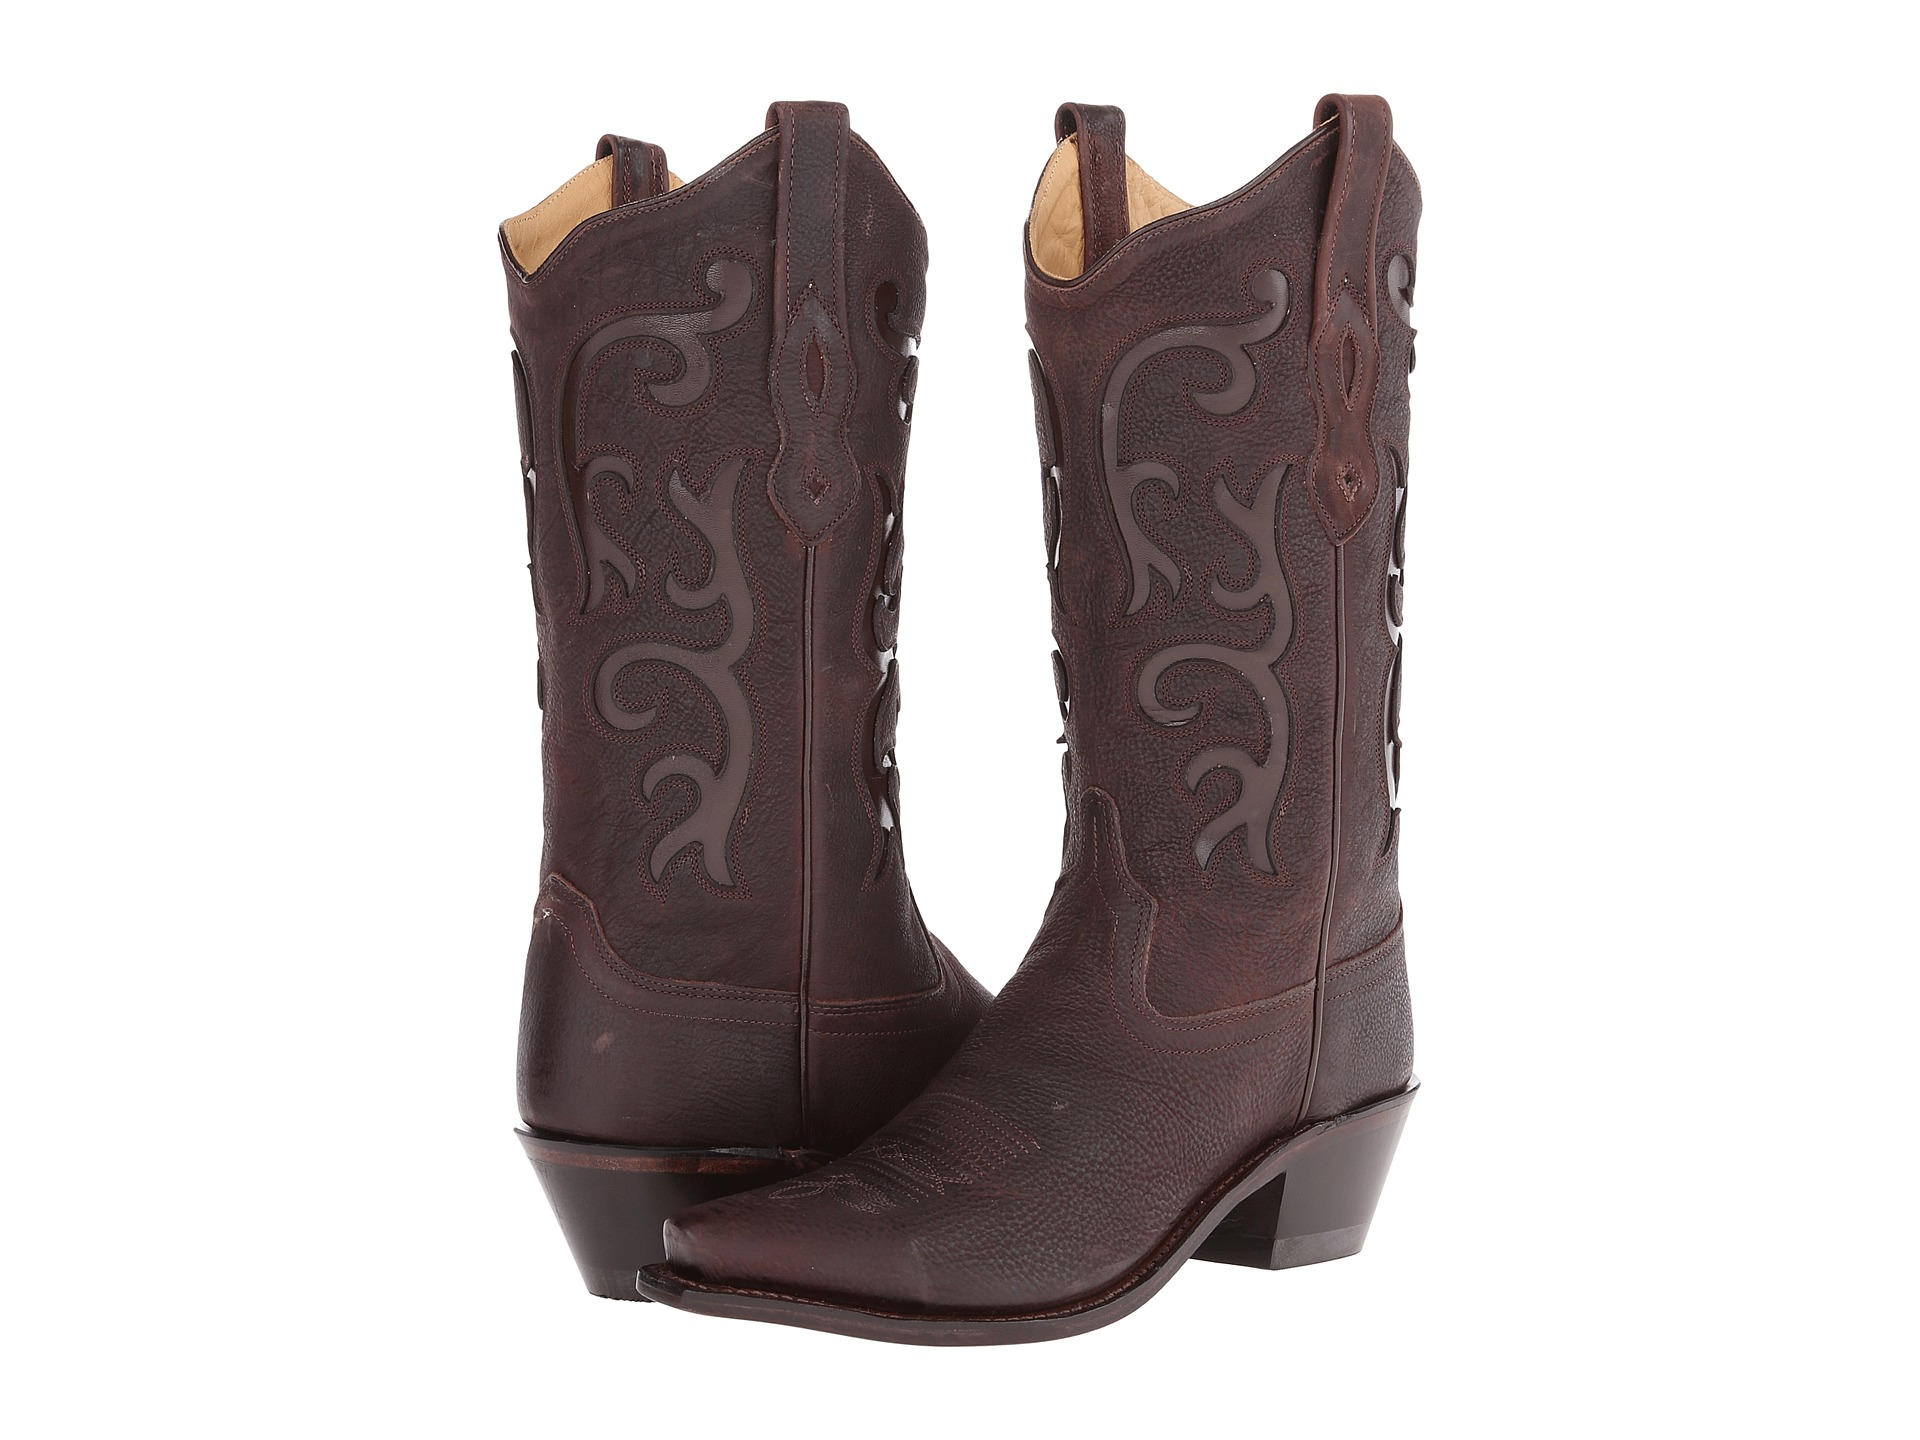 pin escaramuza boots for sale httpwwwpic2flycombotas